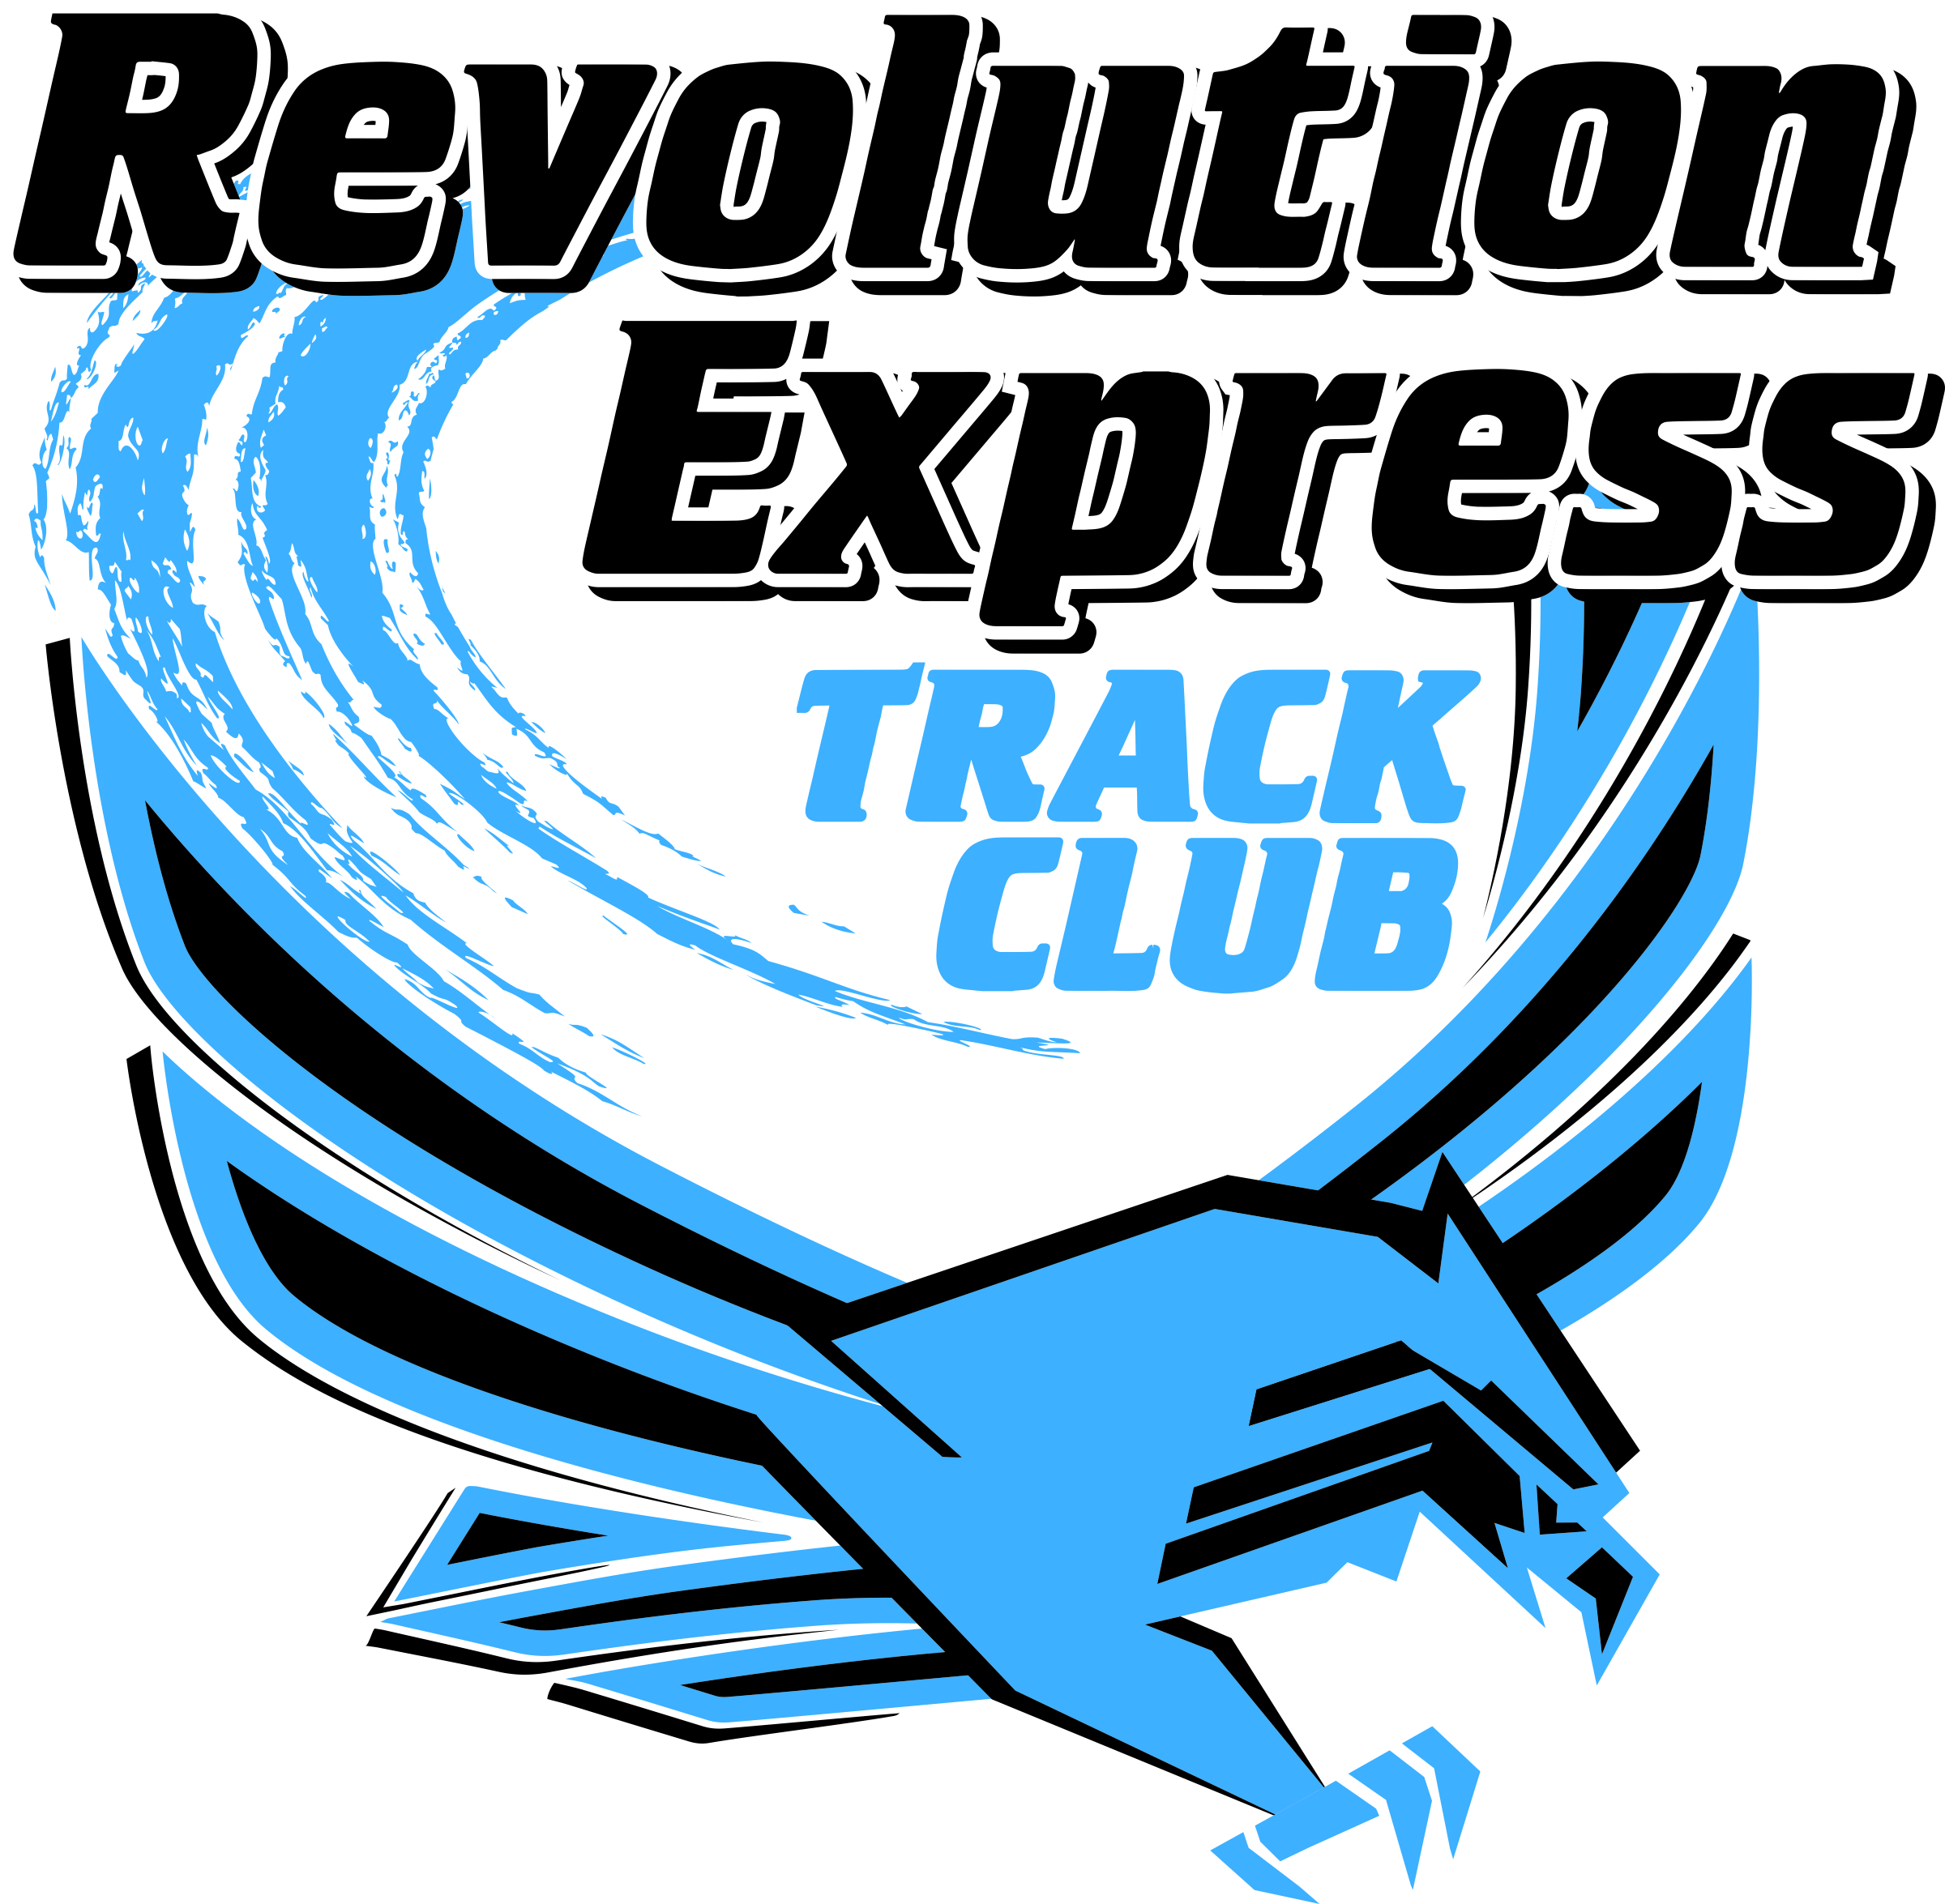 Revolution Express Track Club